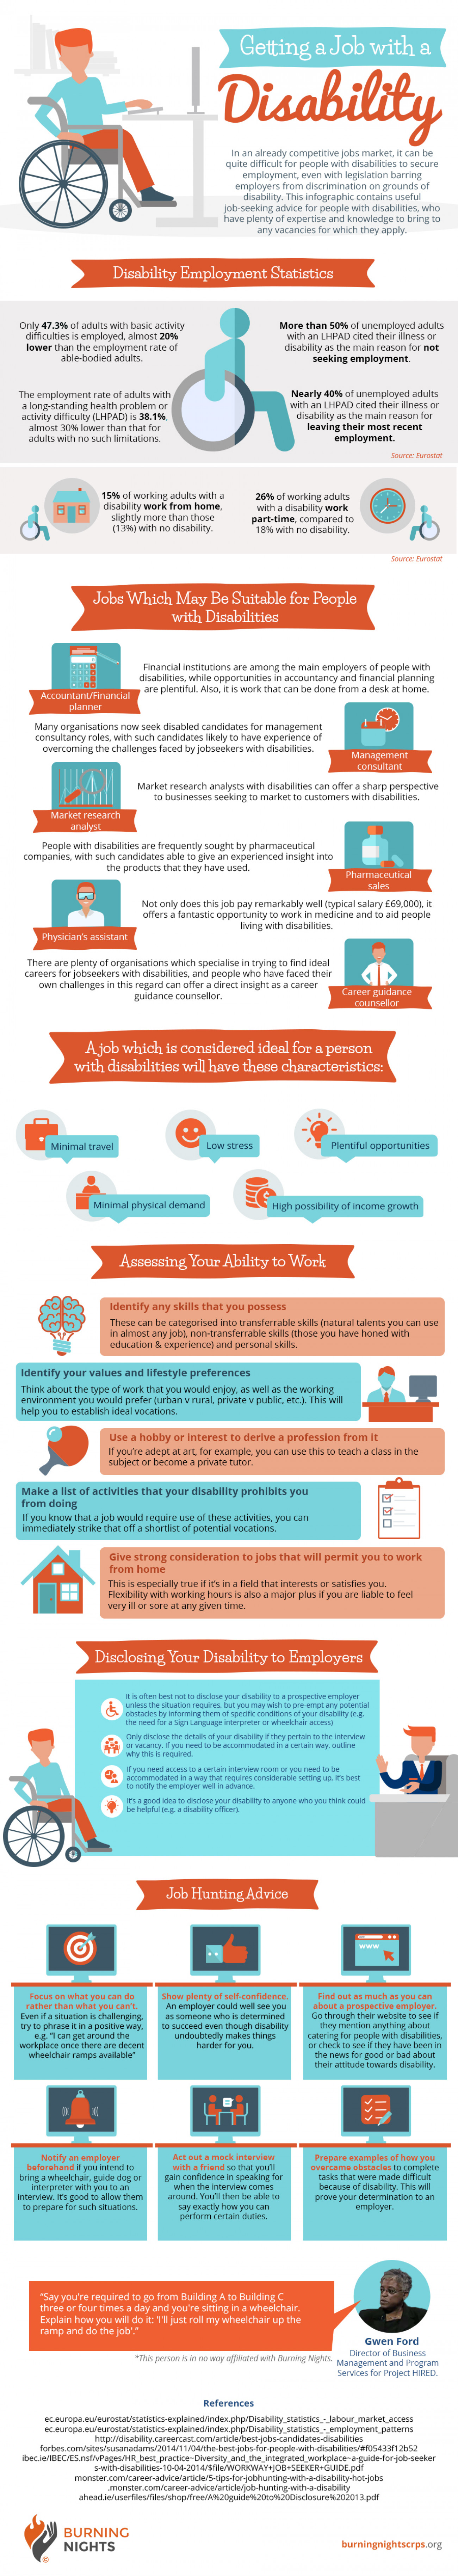 How to Get a Job With a Disability [INFOGRAPHIC]